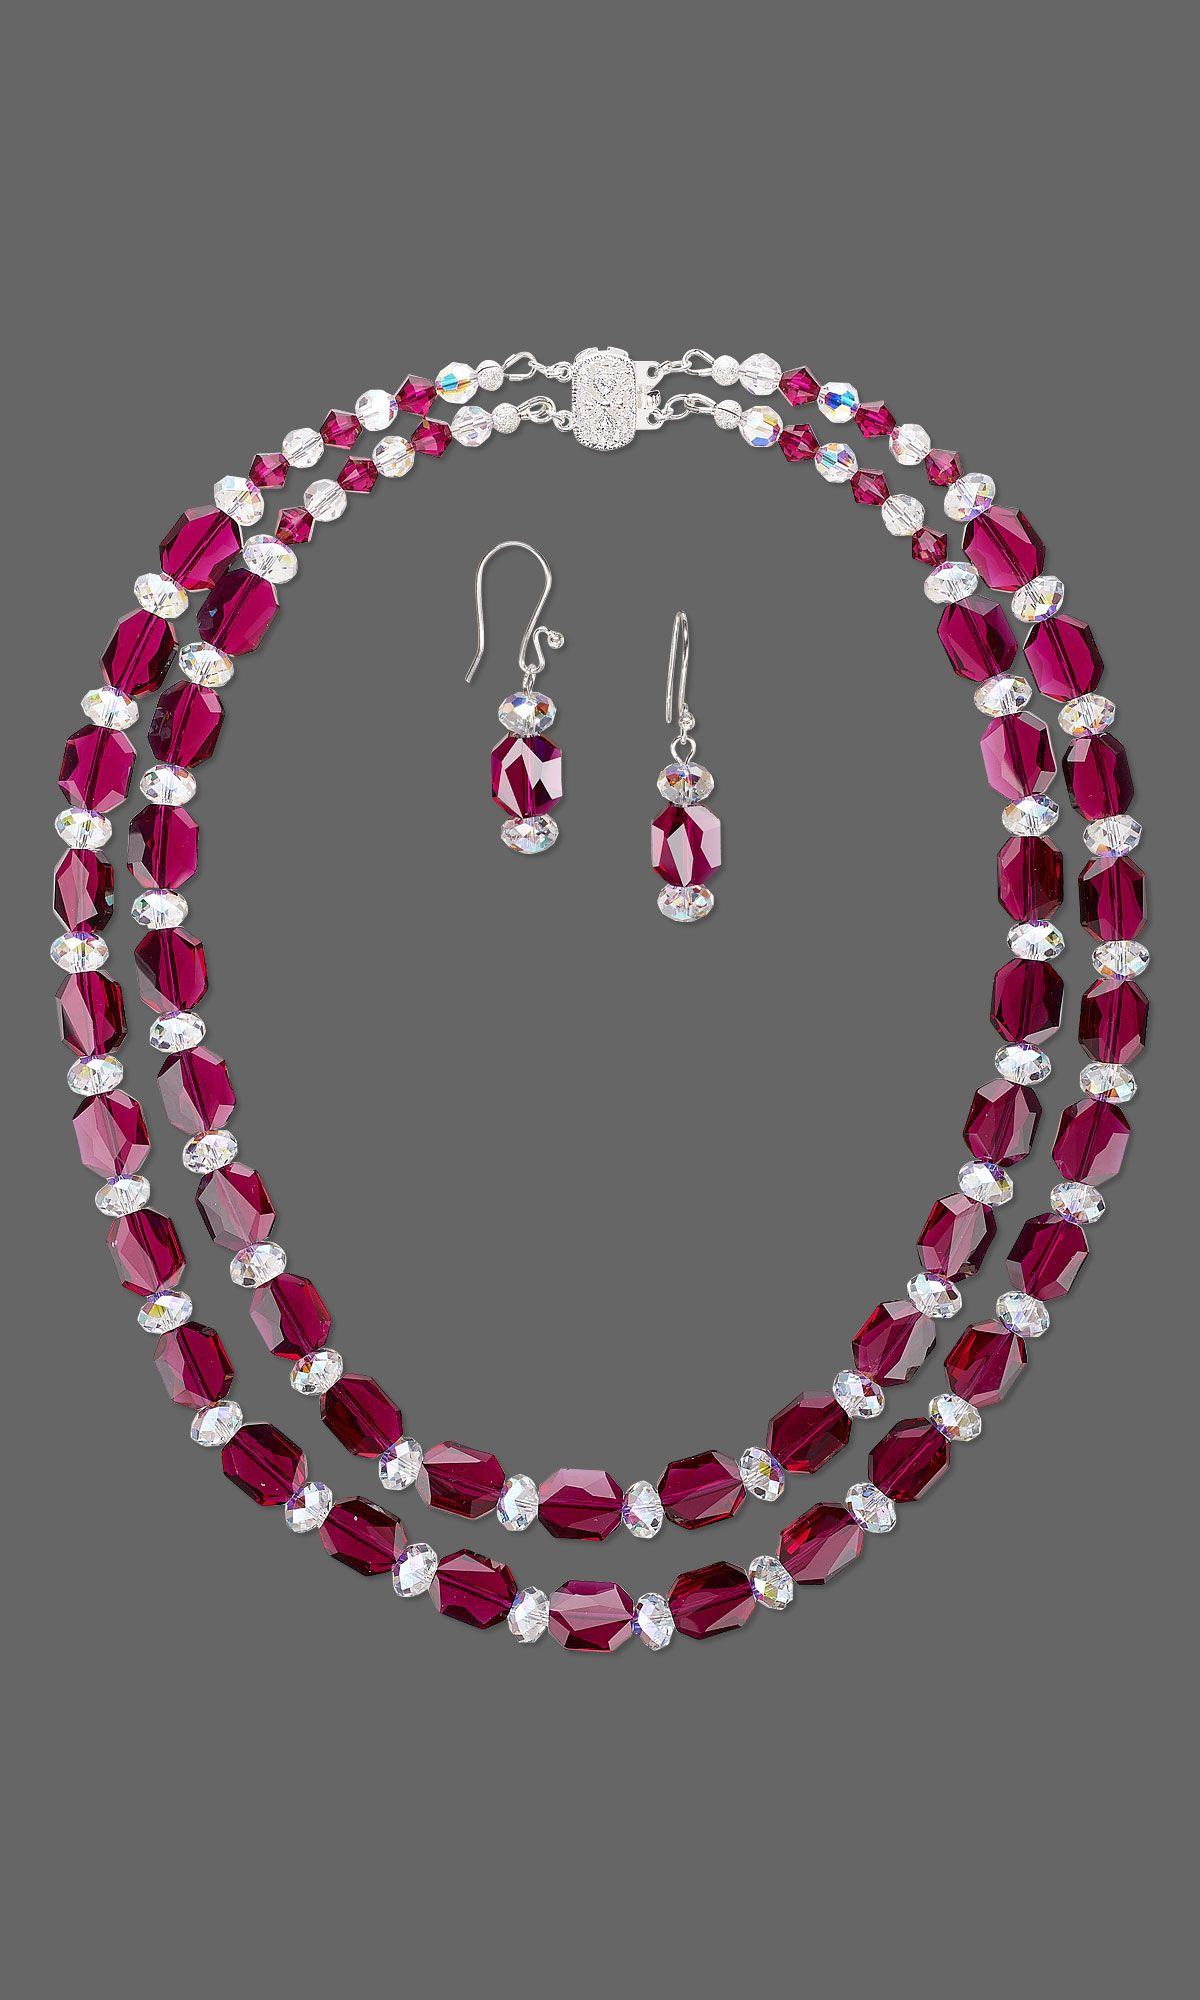 Jewelry Design DoubleStrand Necklace and Earring Set with